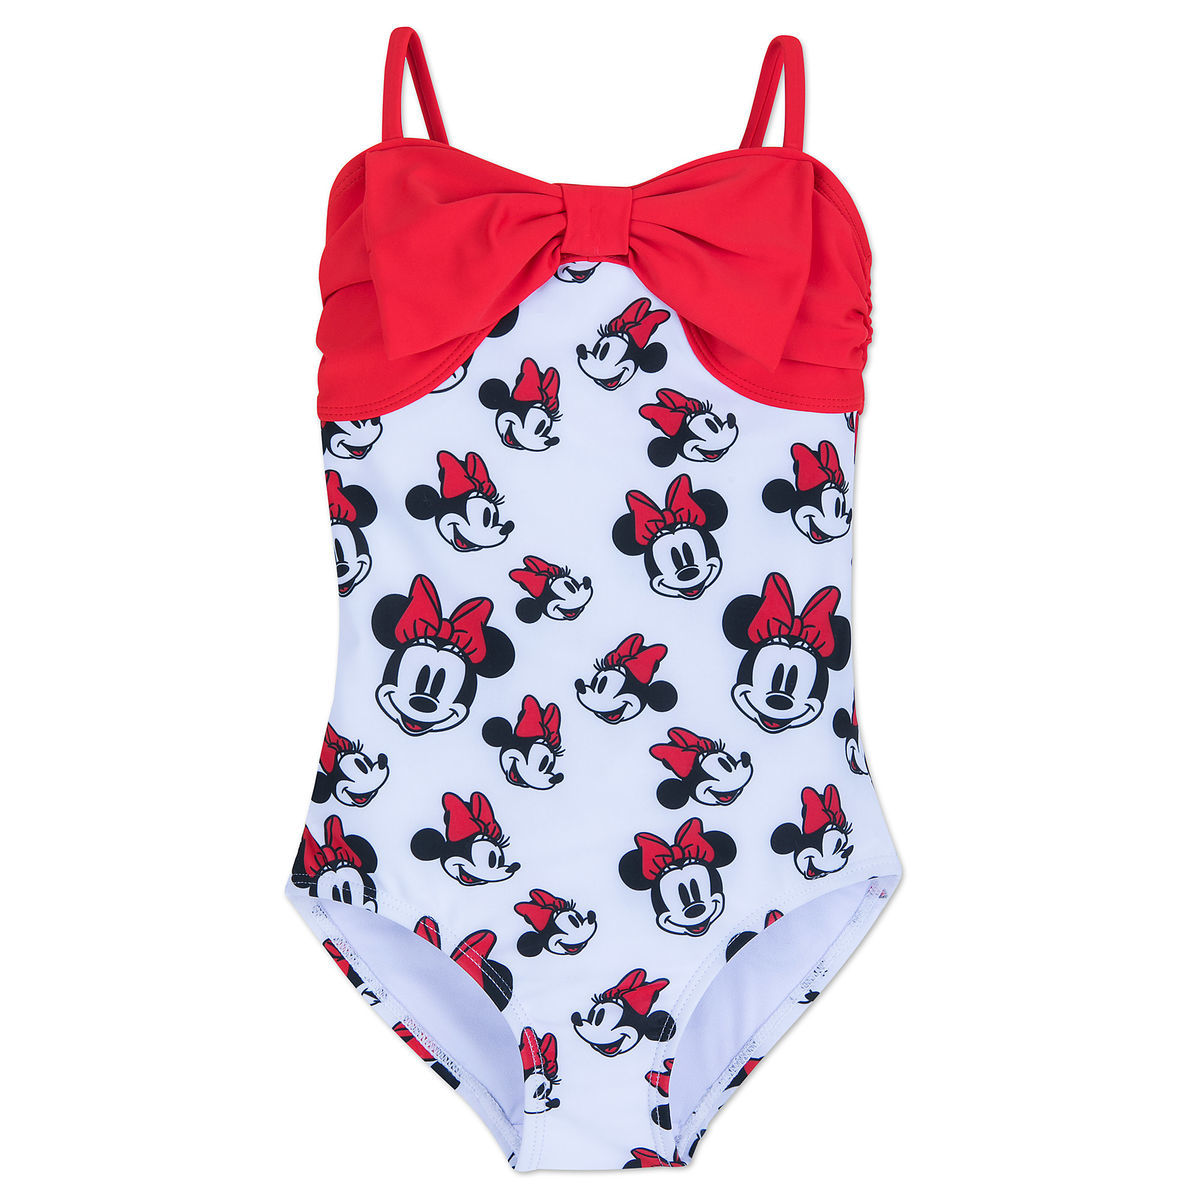 ad6db44fab968 Product Image of Minnie Mouse Swimsuit for Girls   1